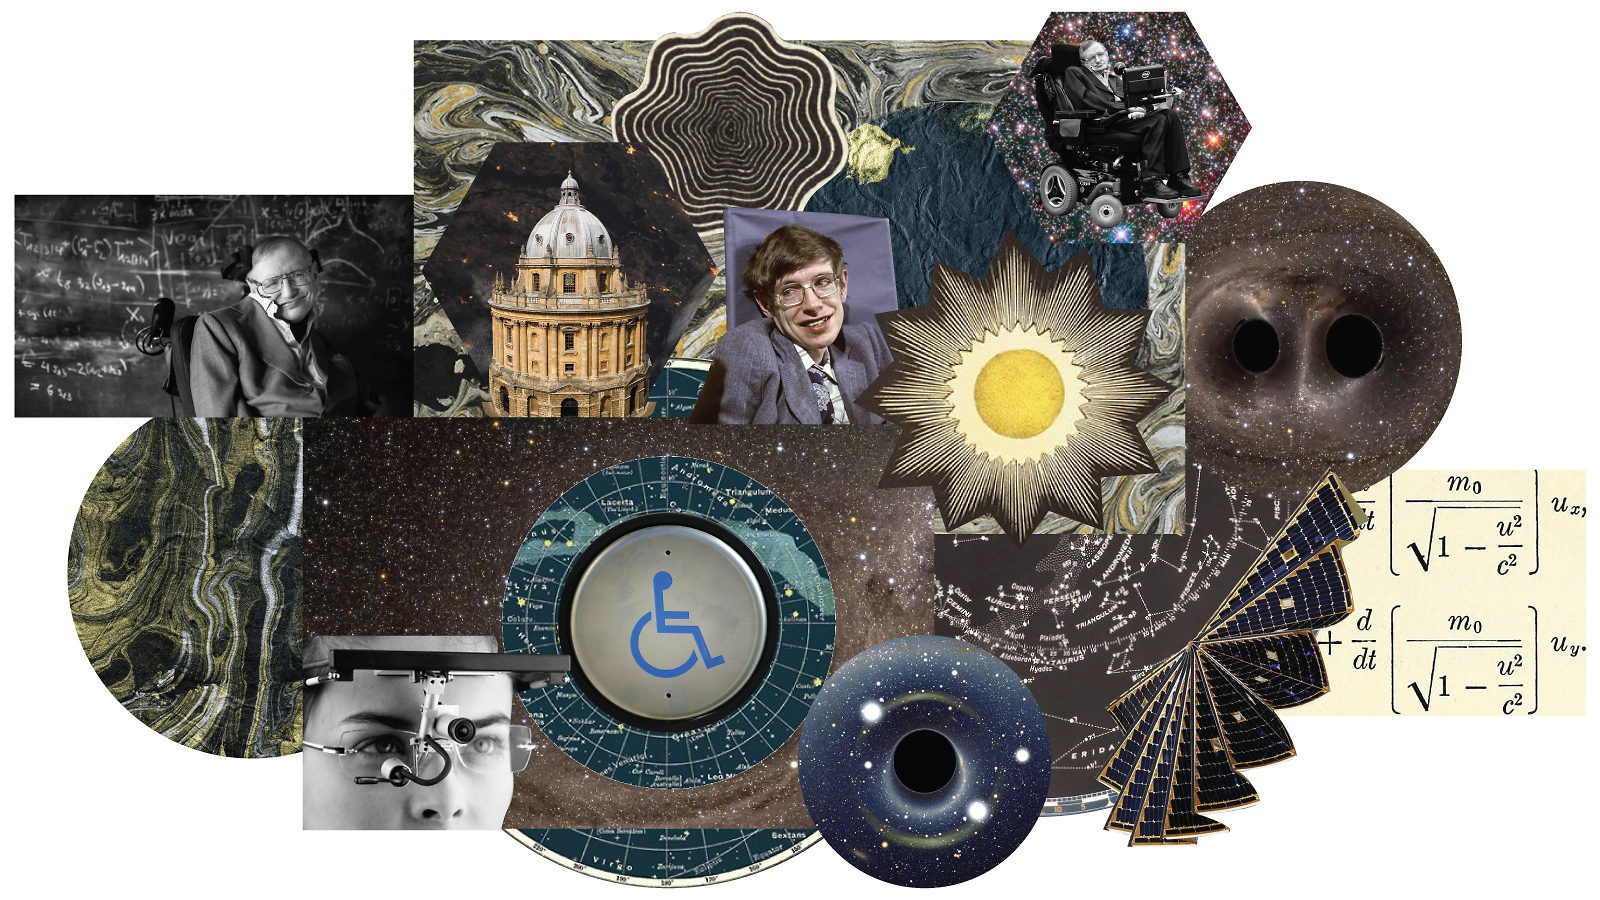 Collage of Stephen Hawking including: Oxford university, eye tracker, gravitational waves, equations, and a disability symbol